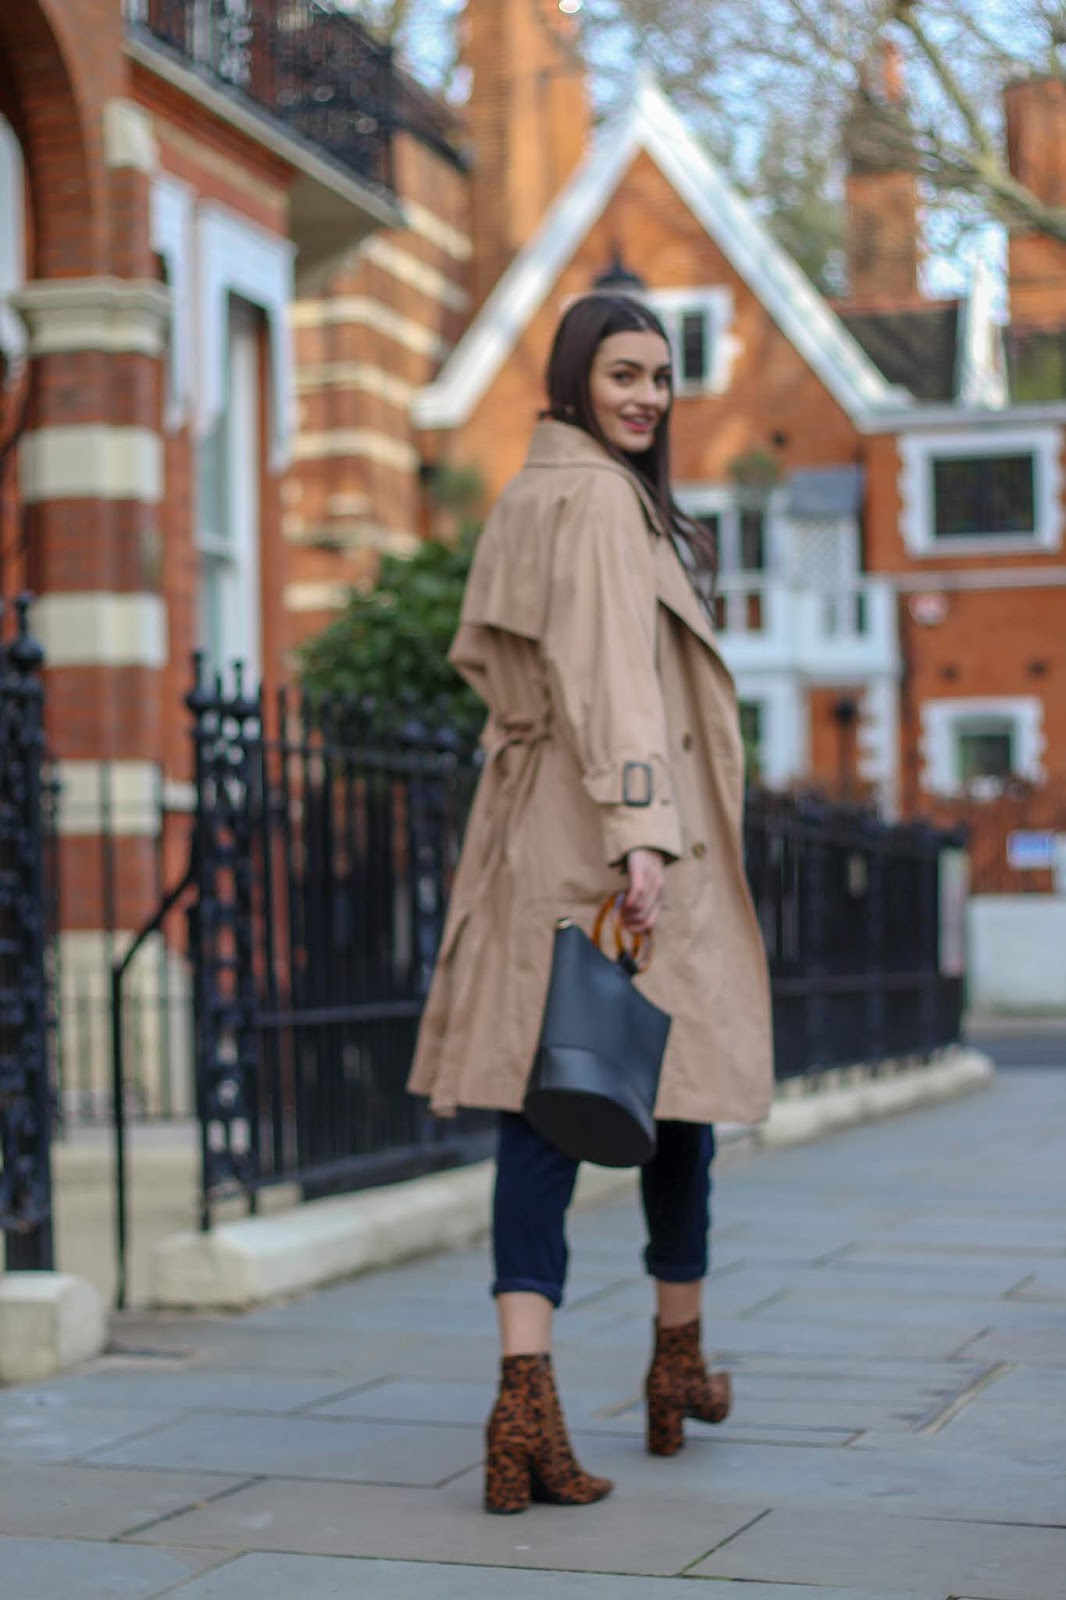 trench coat transitional style